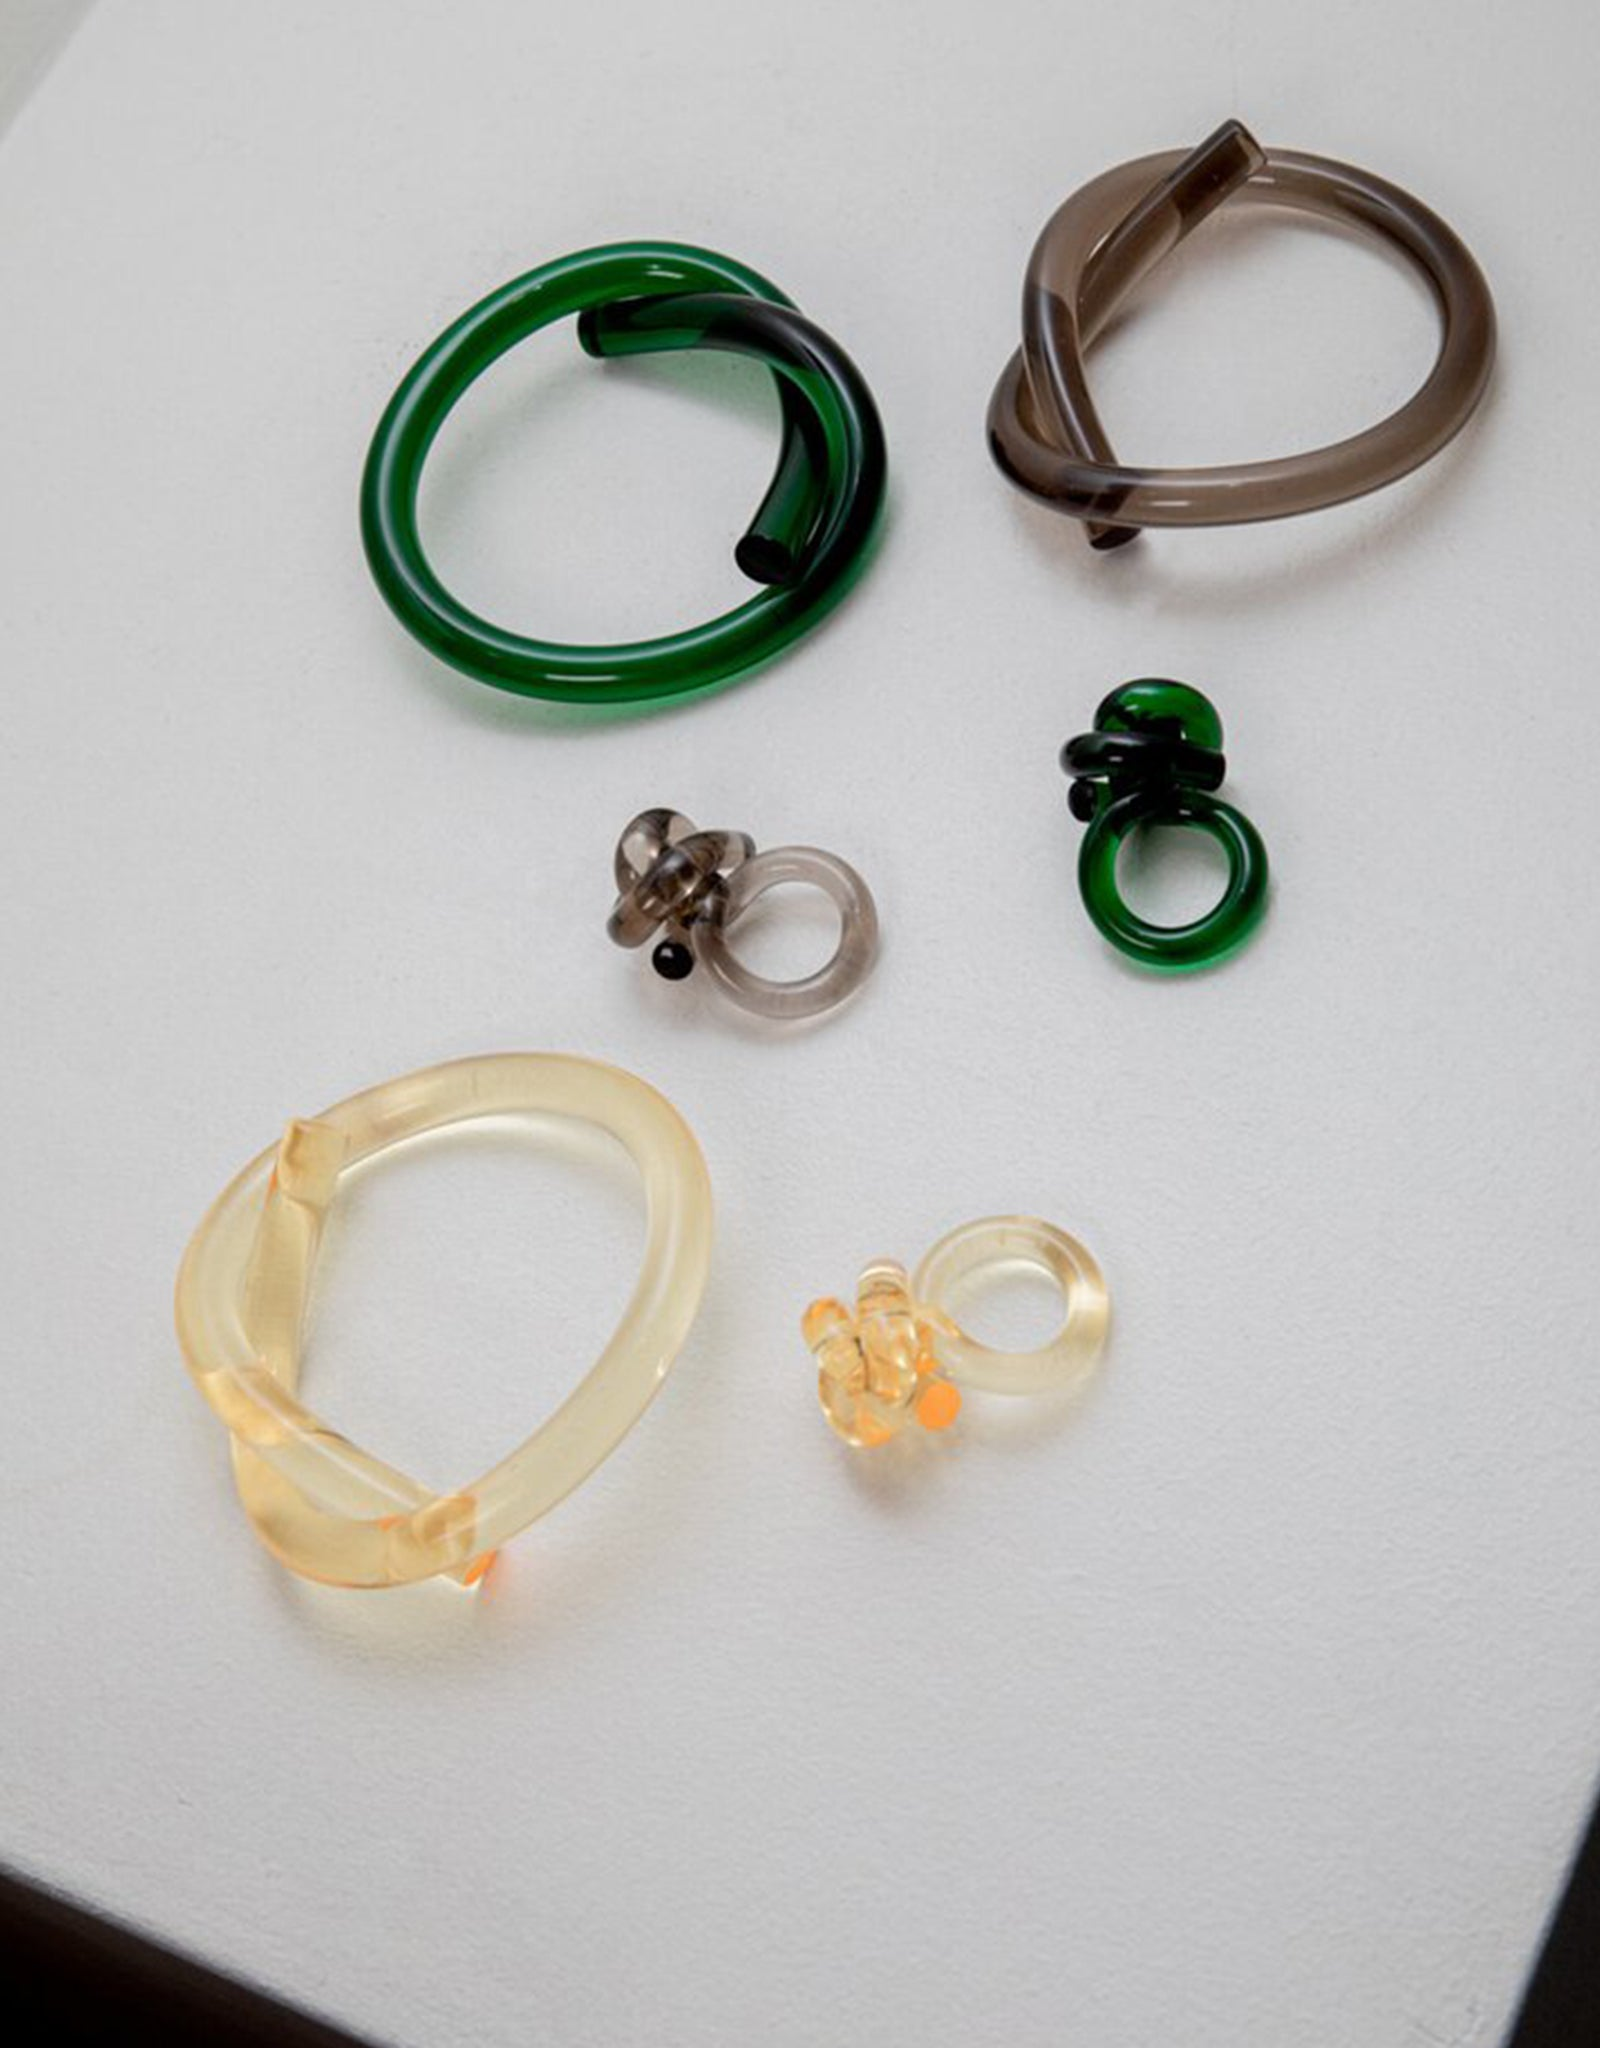 Flatlay of Green, Yellow, and Smoke Knot Rings and Pretzel Bracelets by Corey Moranis. Available at FAWN Toronto.